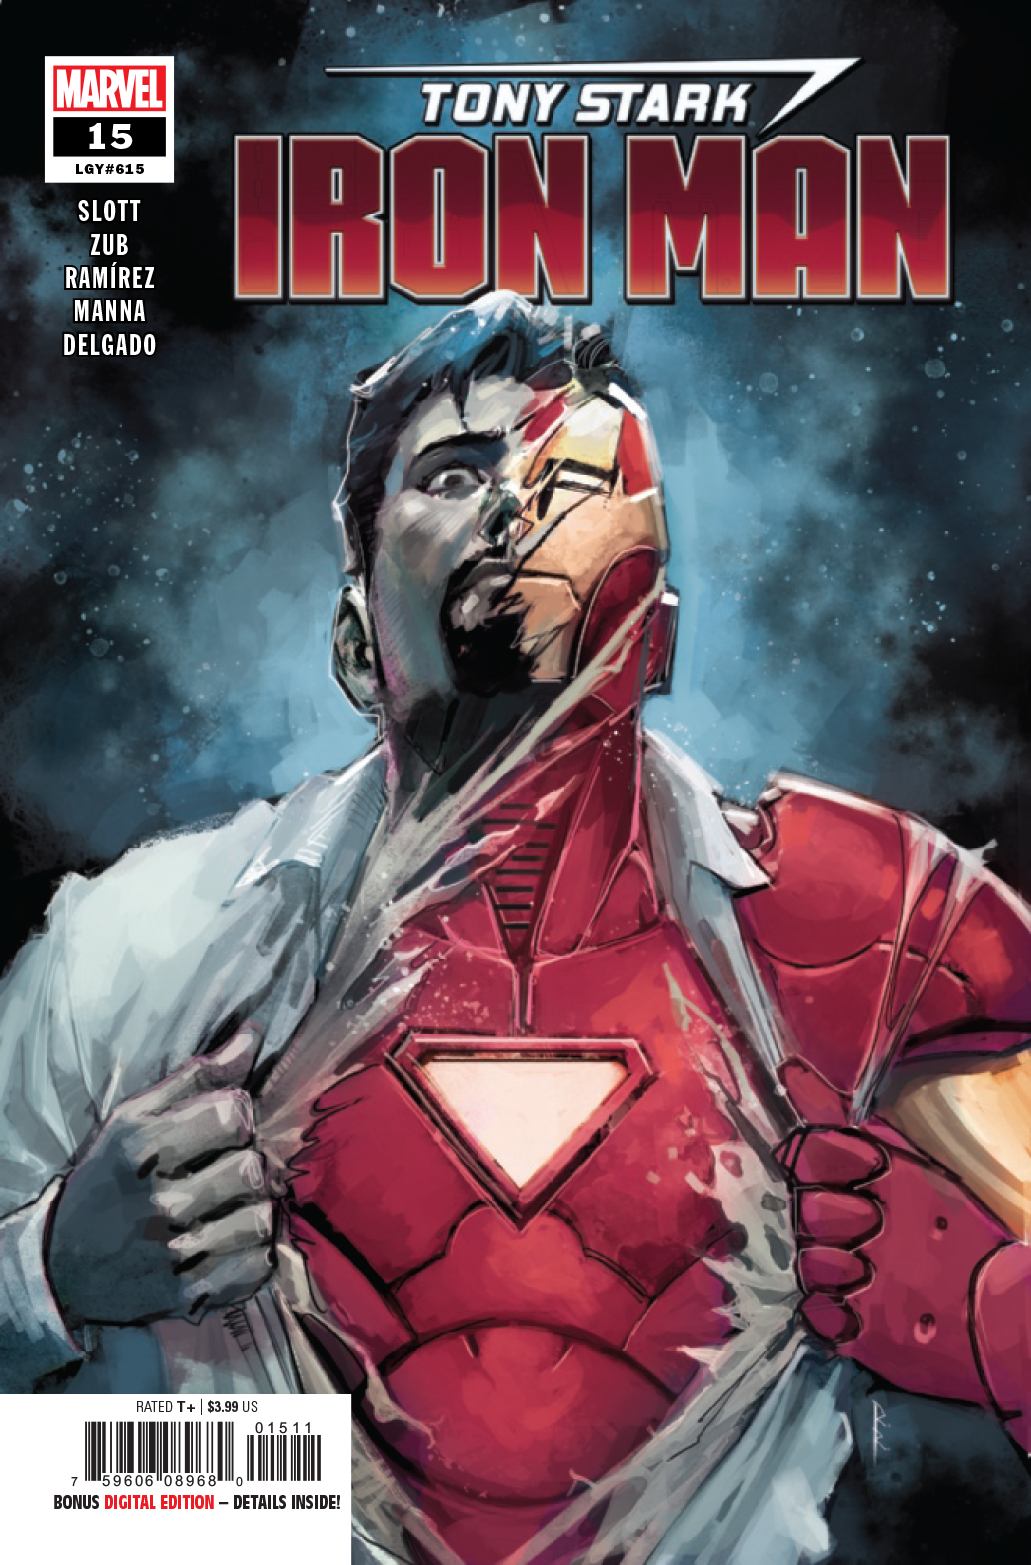 TONY STARK IRON MAN #15